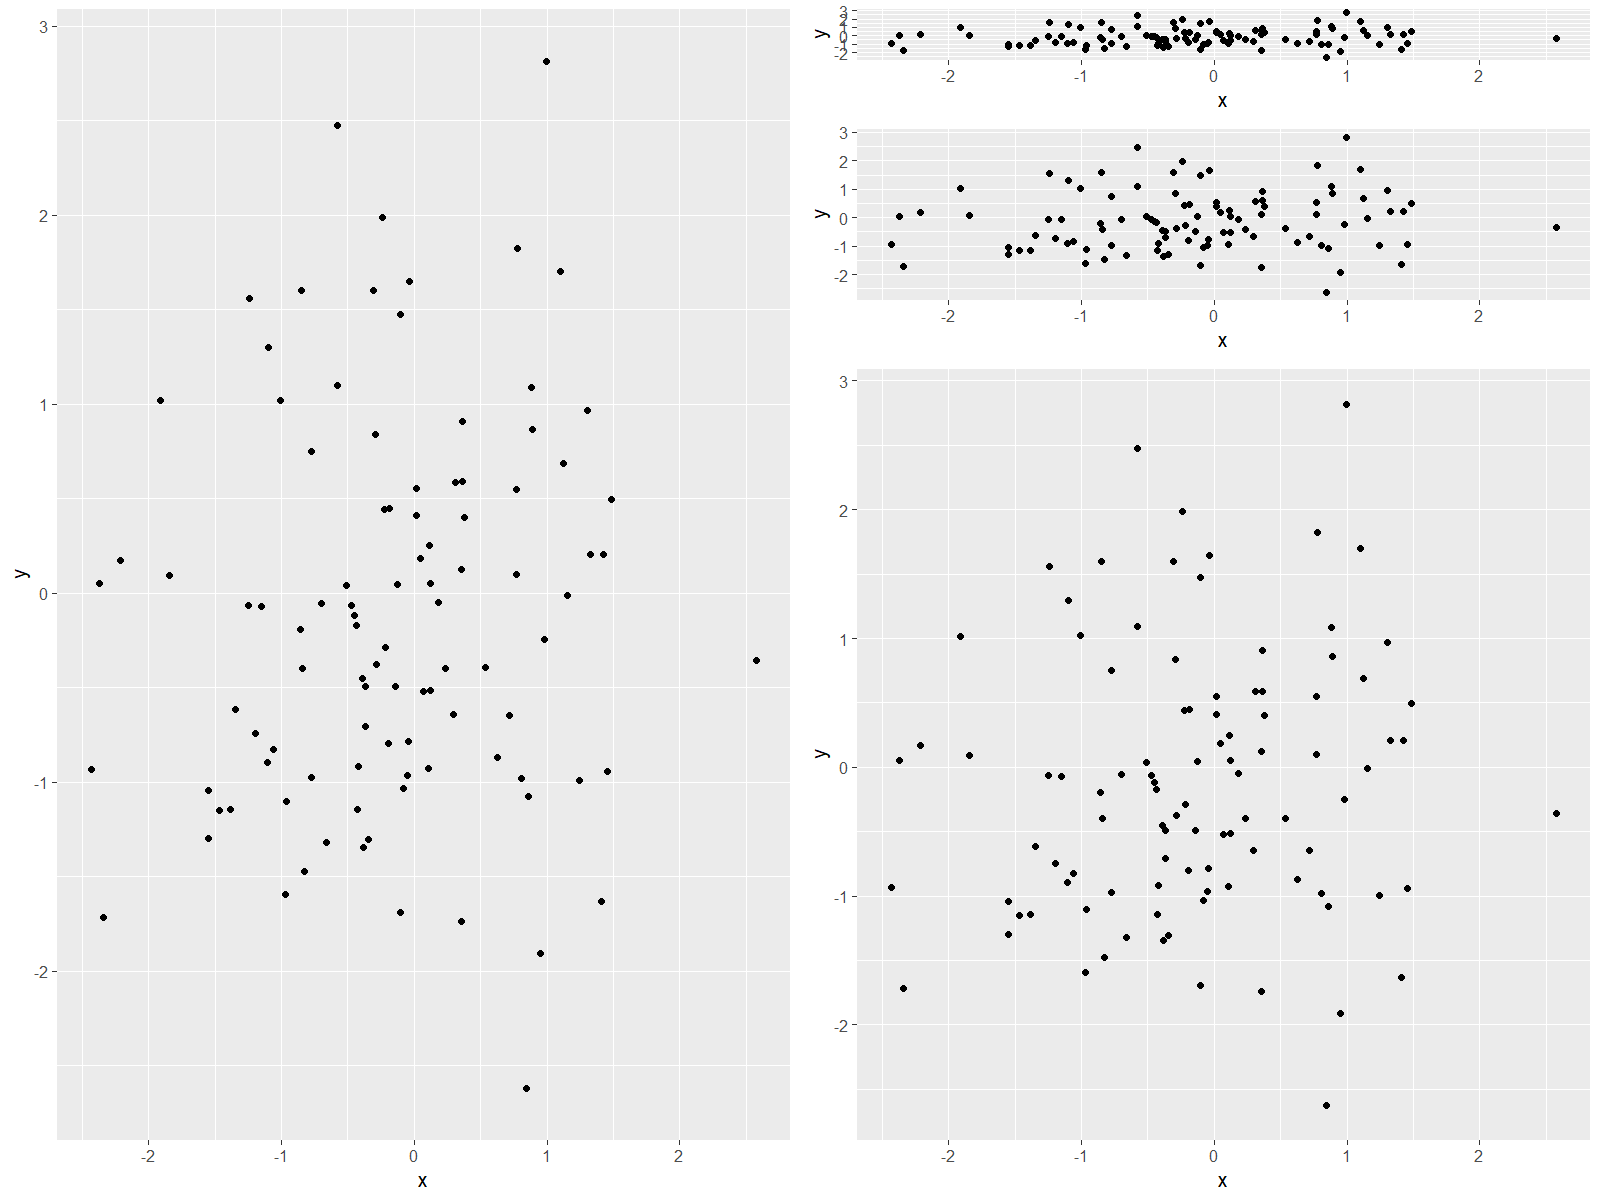 multiple ggplot2 plots side-by-side with uneven size in r